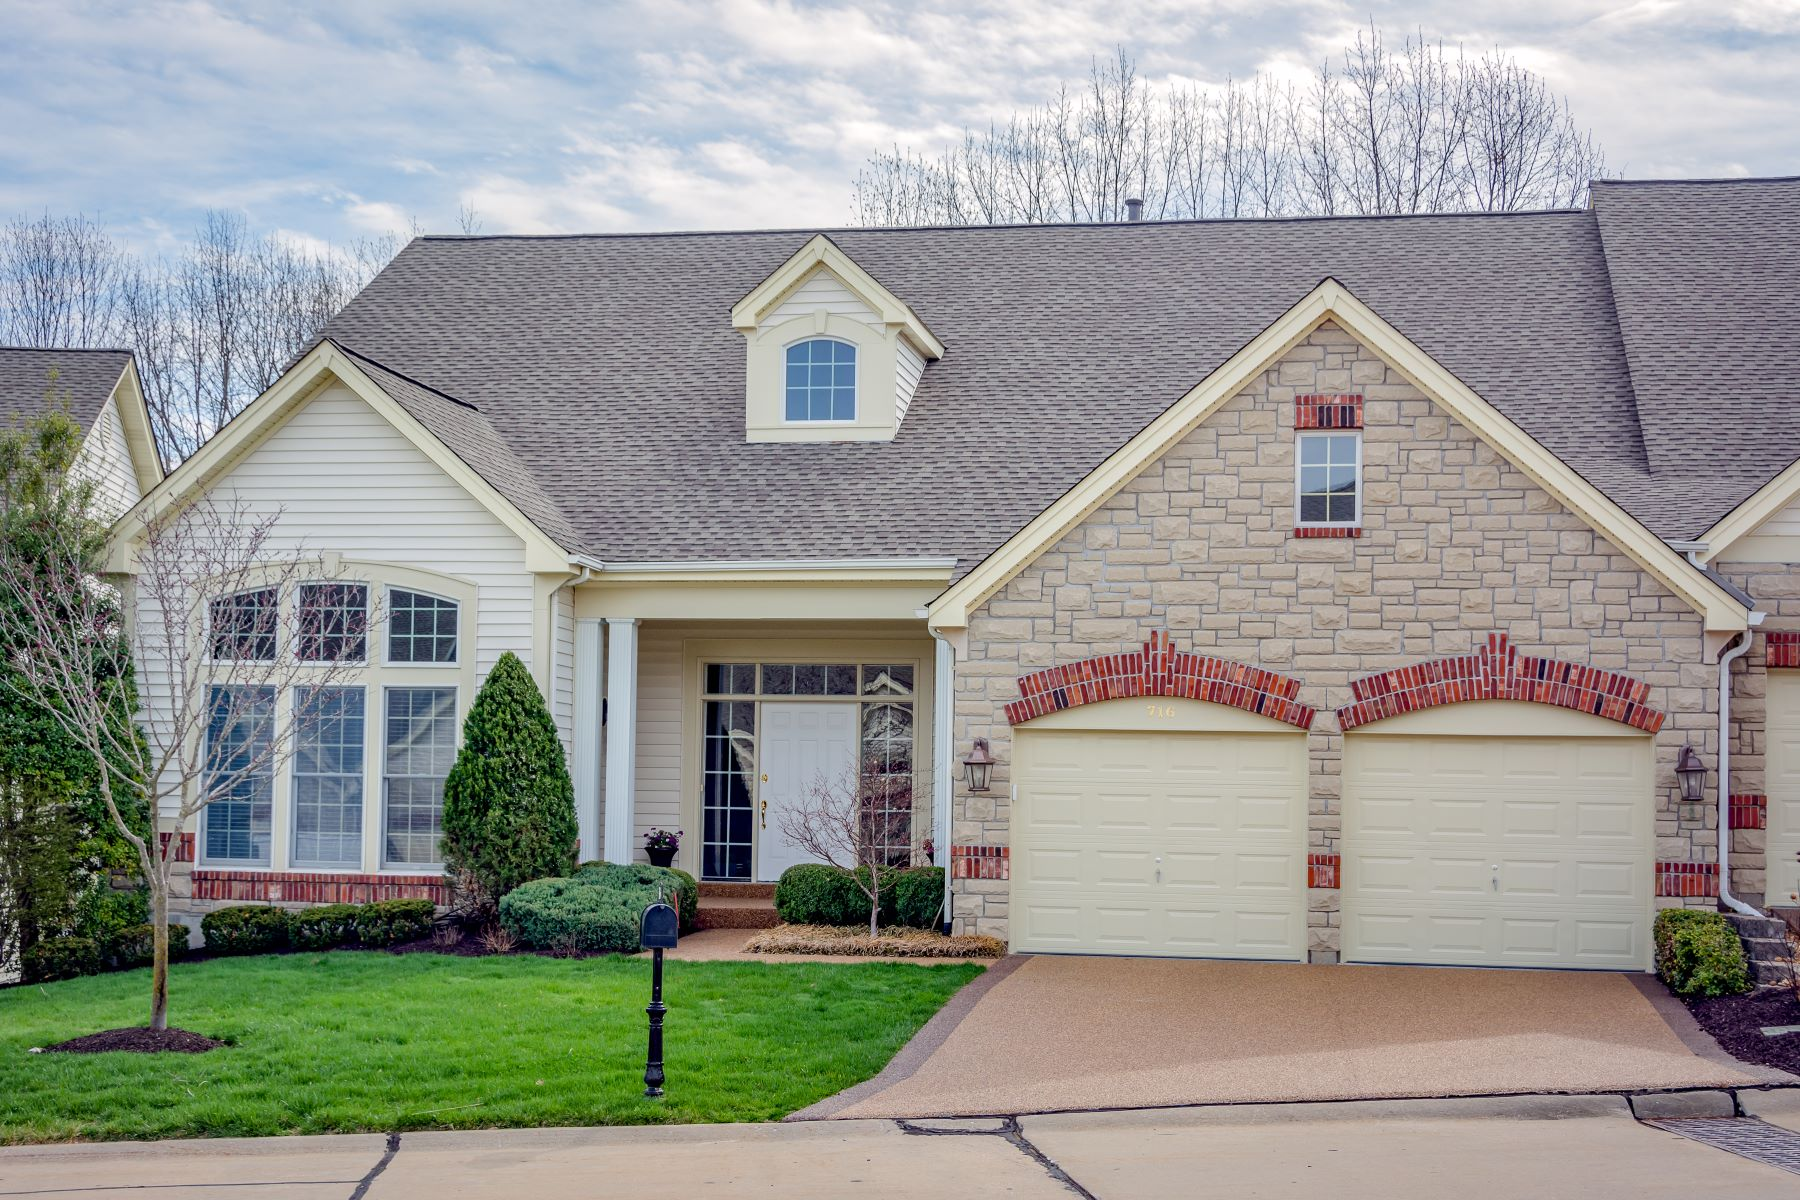 Condominium for Sale at 716 Stonebluff Court, Chesterfield, MO 63005 716 Stonebluff Court Chesterfield, Missouri 63005 United States